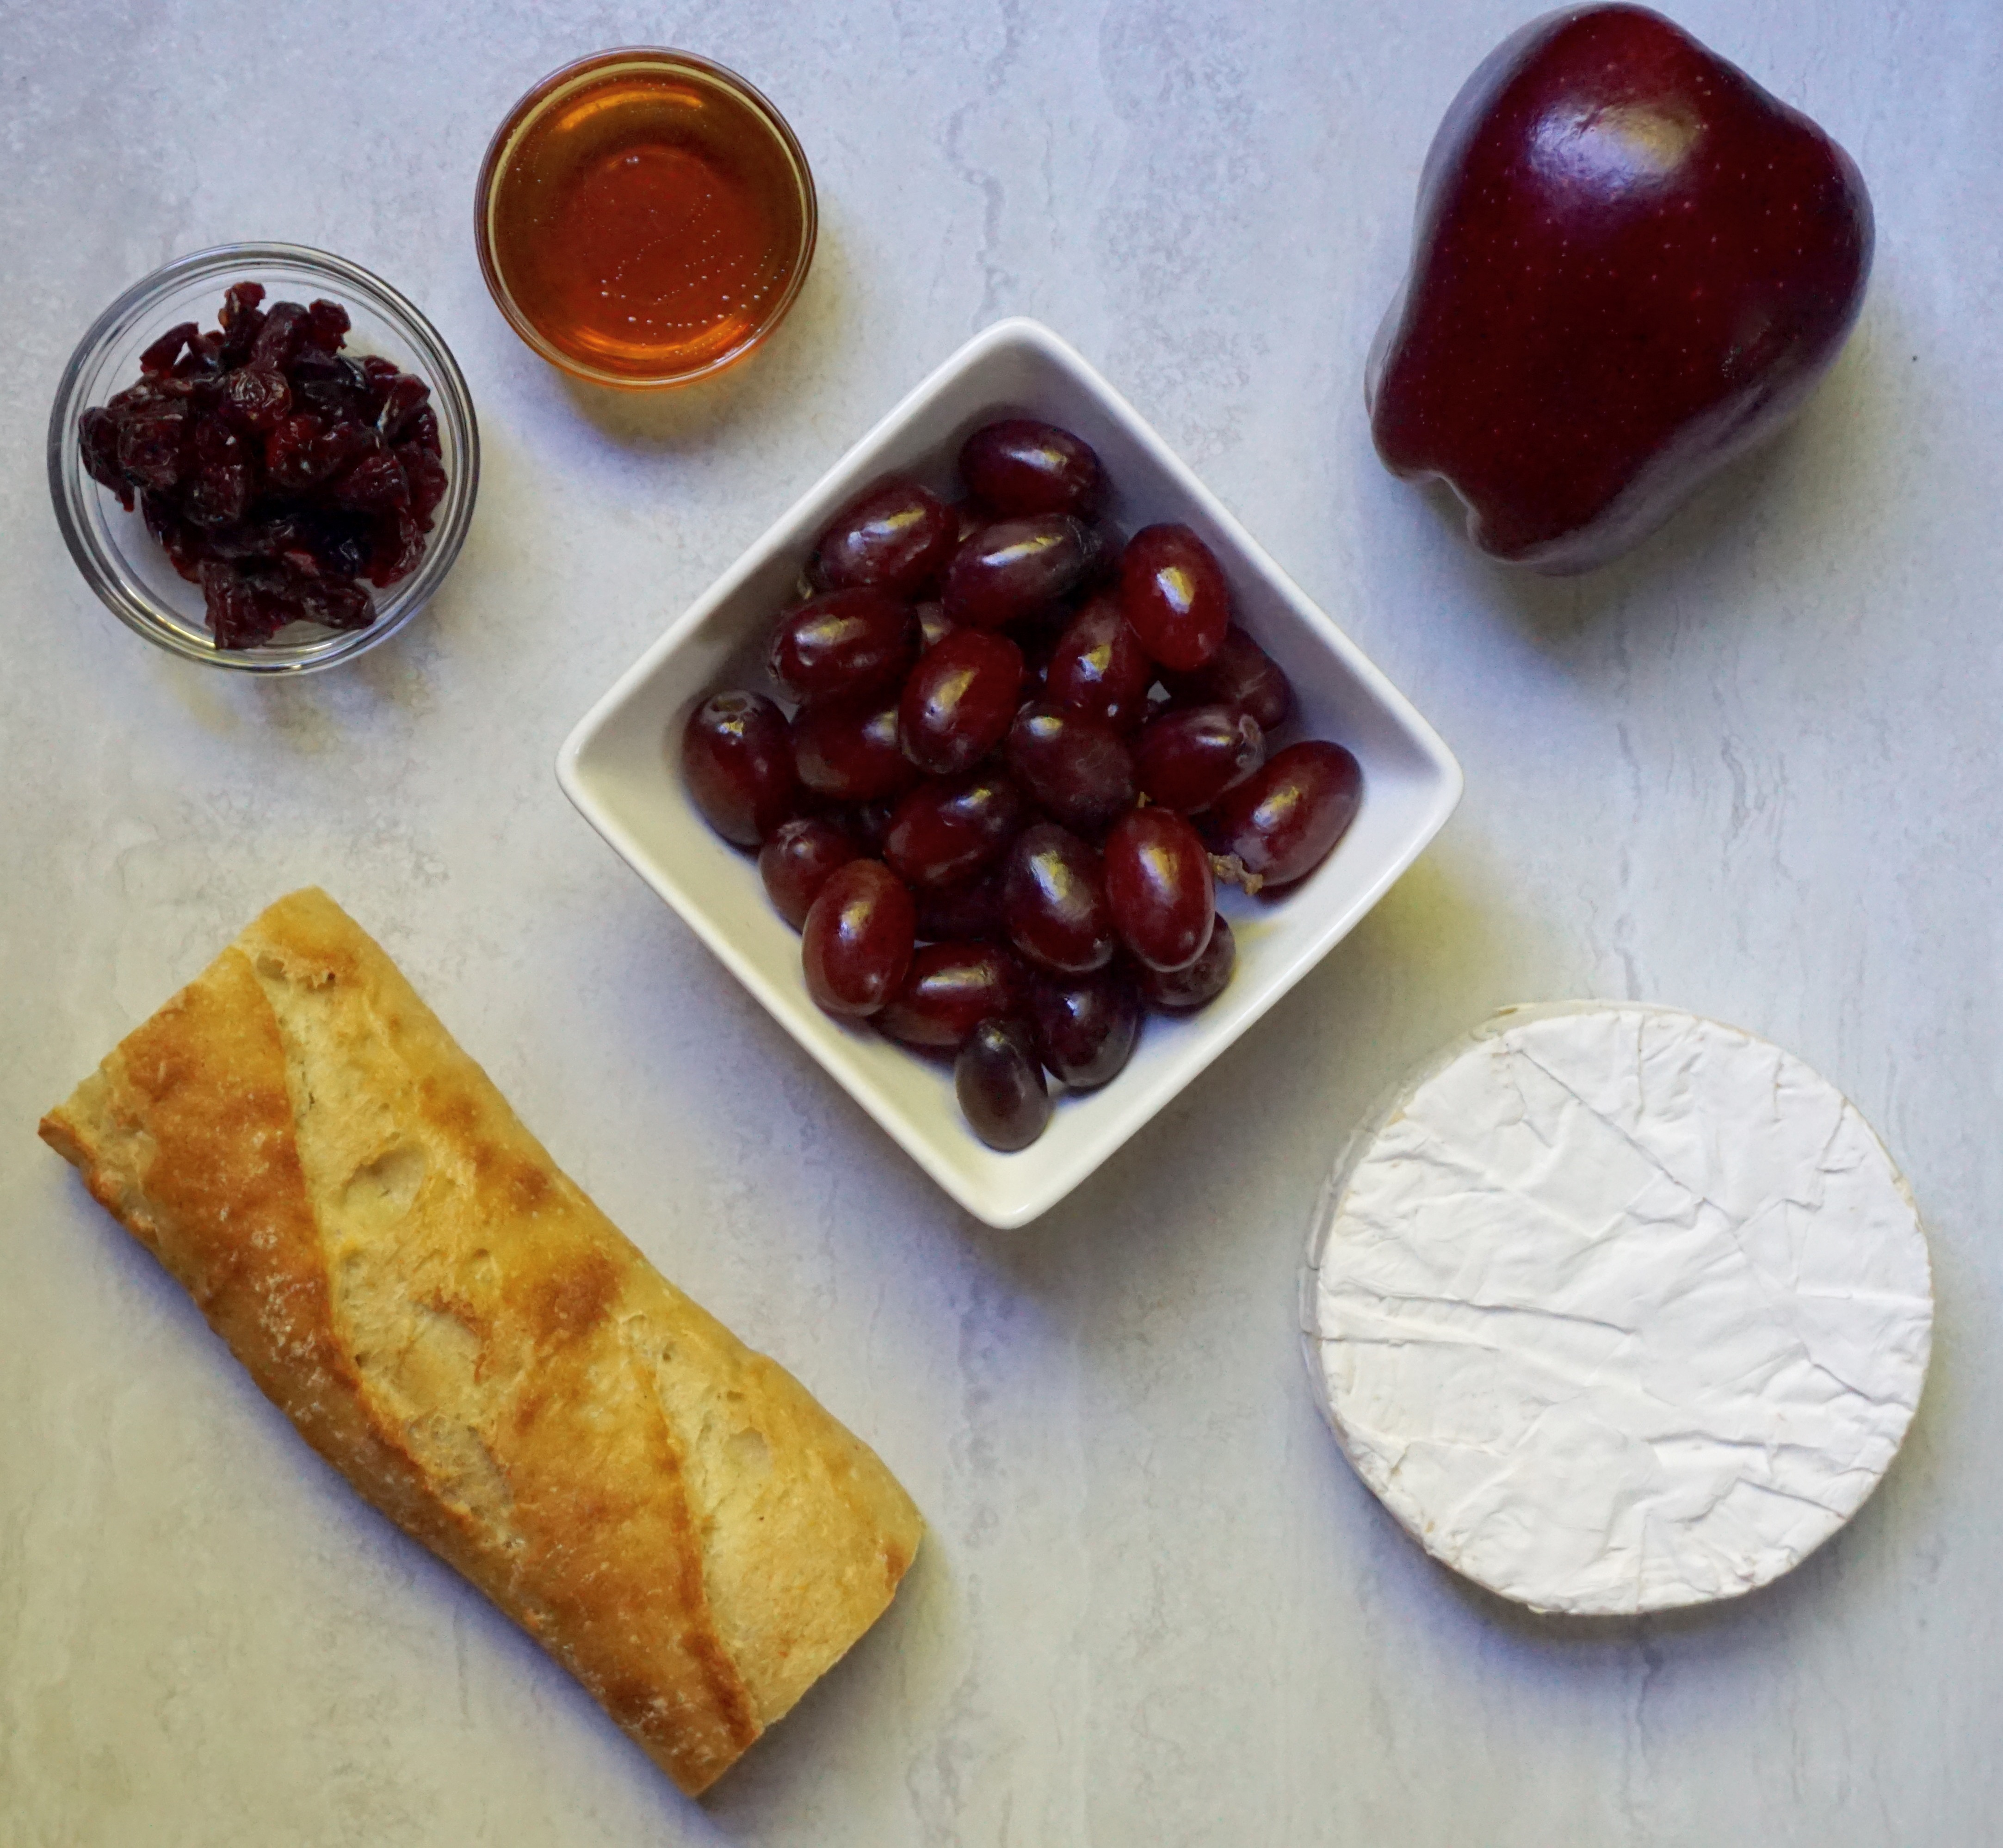 Baked Brie with Honey and Cranberries ingredients